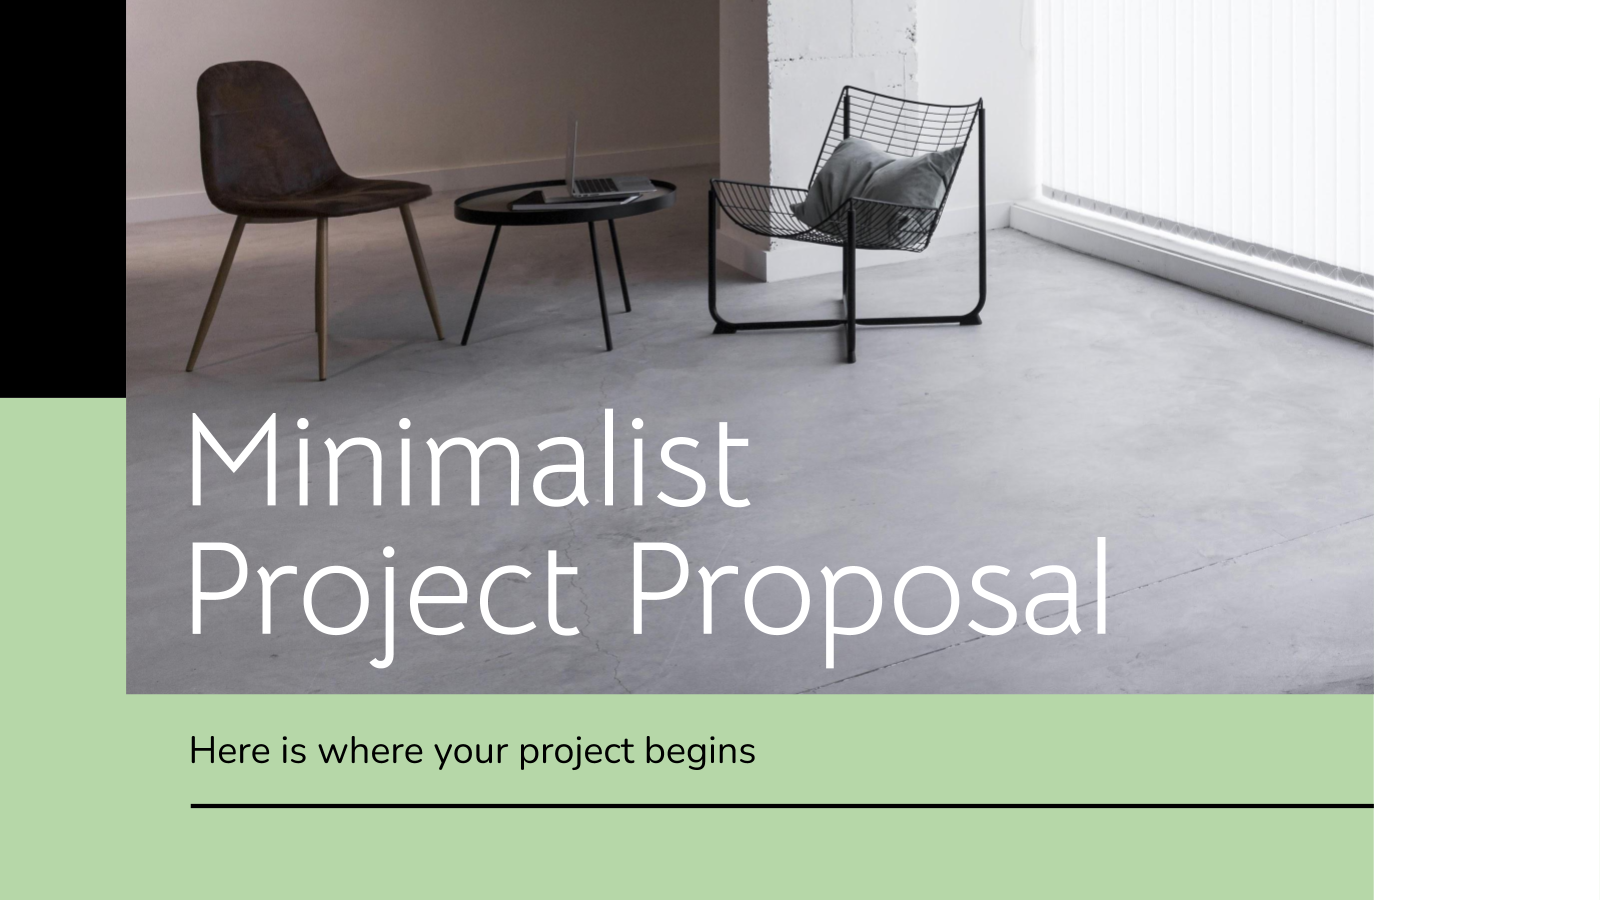 Minimalist Project Proposal presentation template